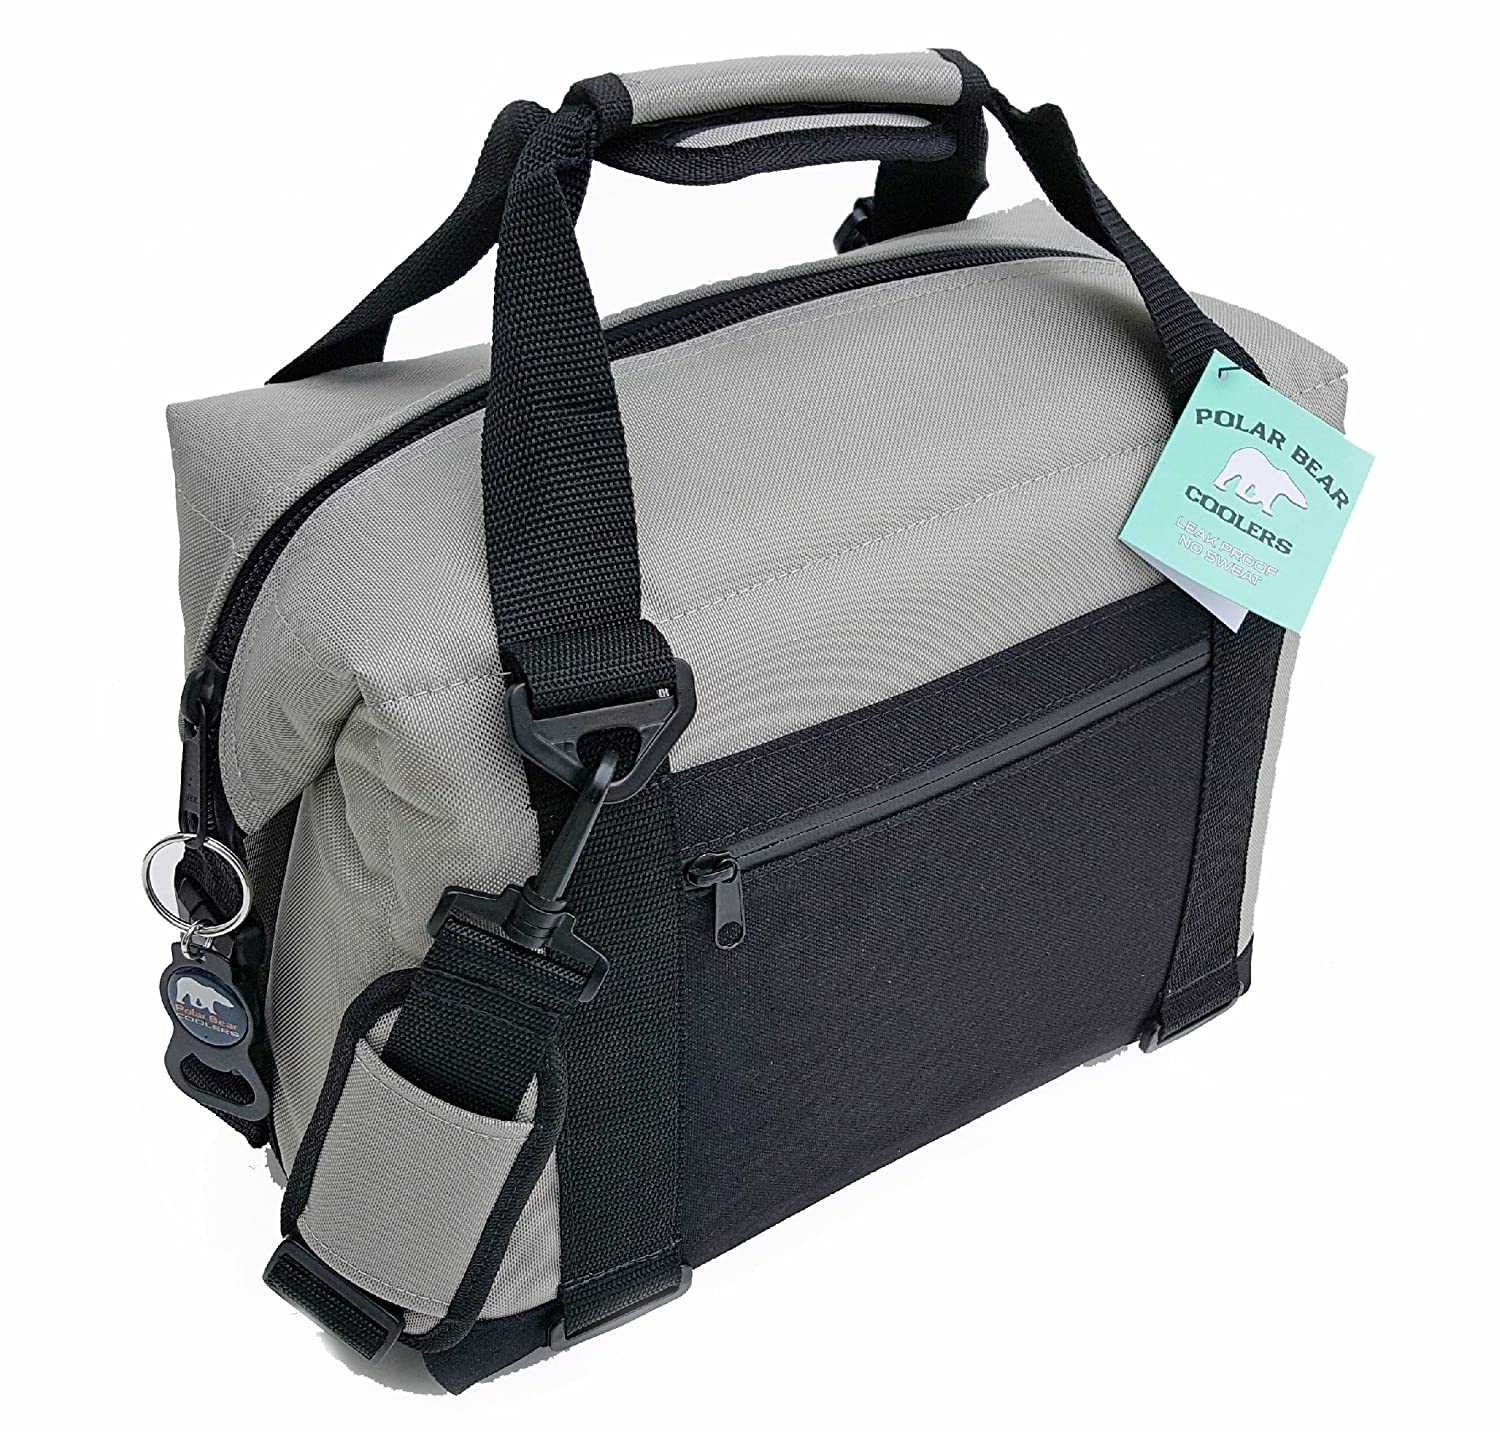 Polar Bear Coolers The Original PERFORMANCE Soft Cooler and Backpack Cooler  Best Backpack Coolers